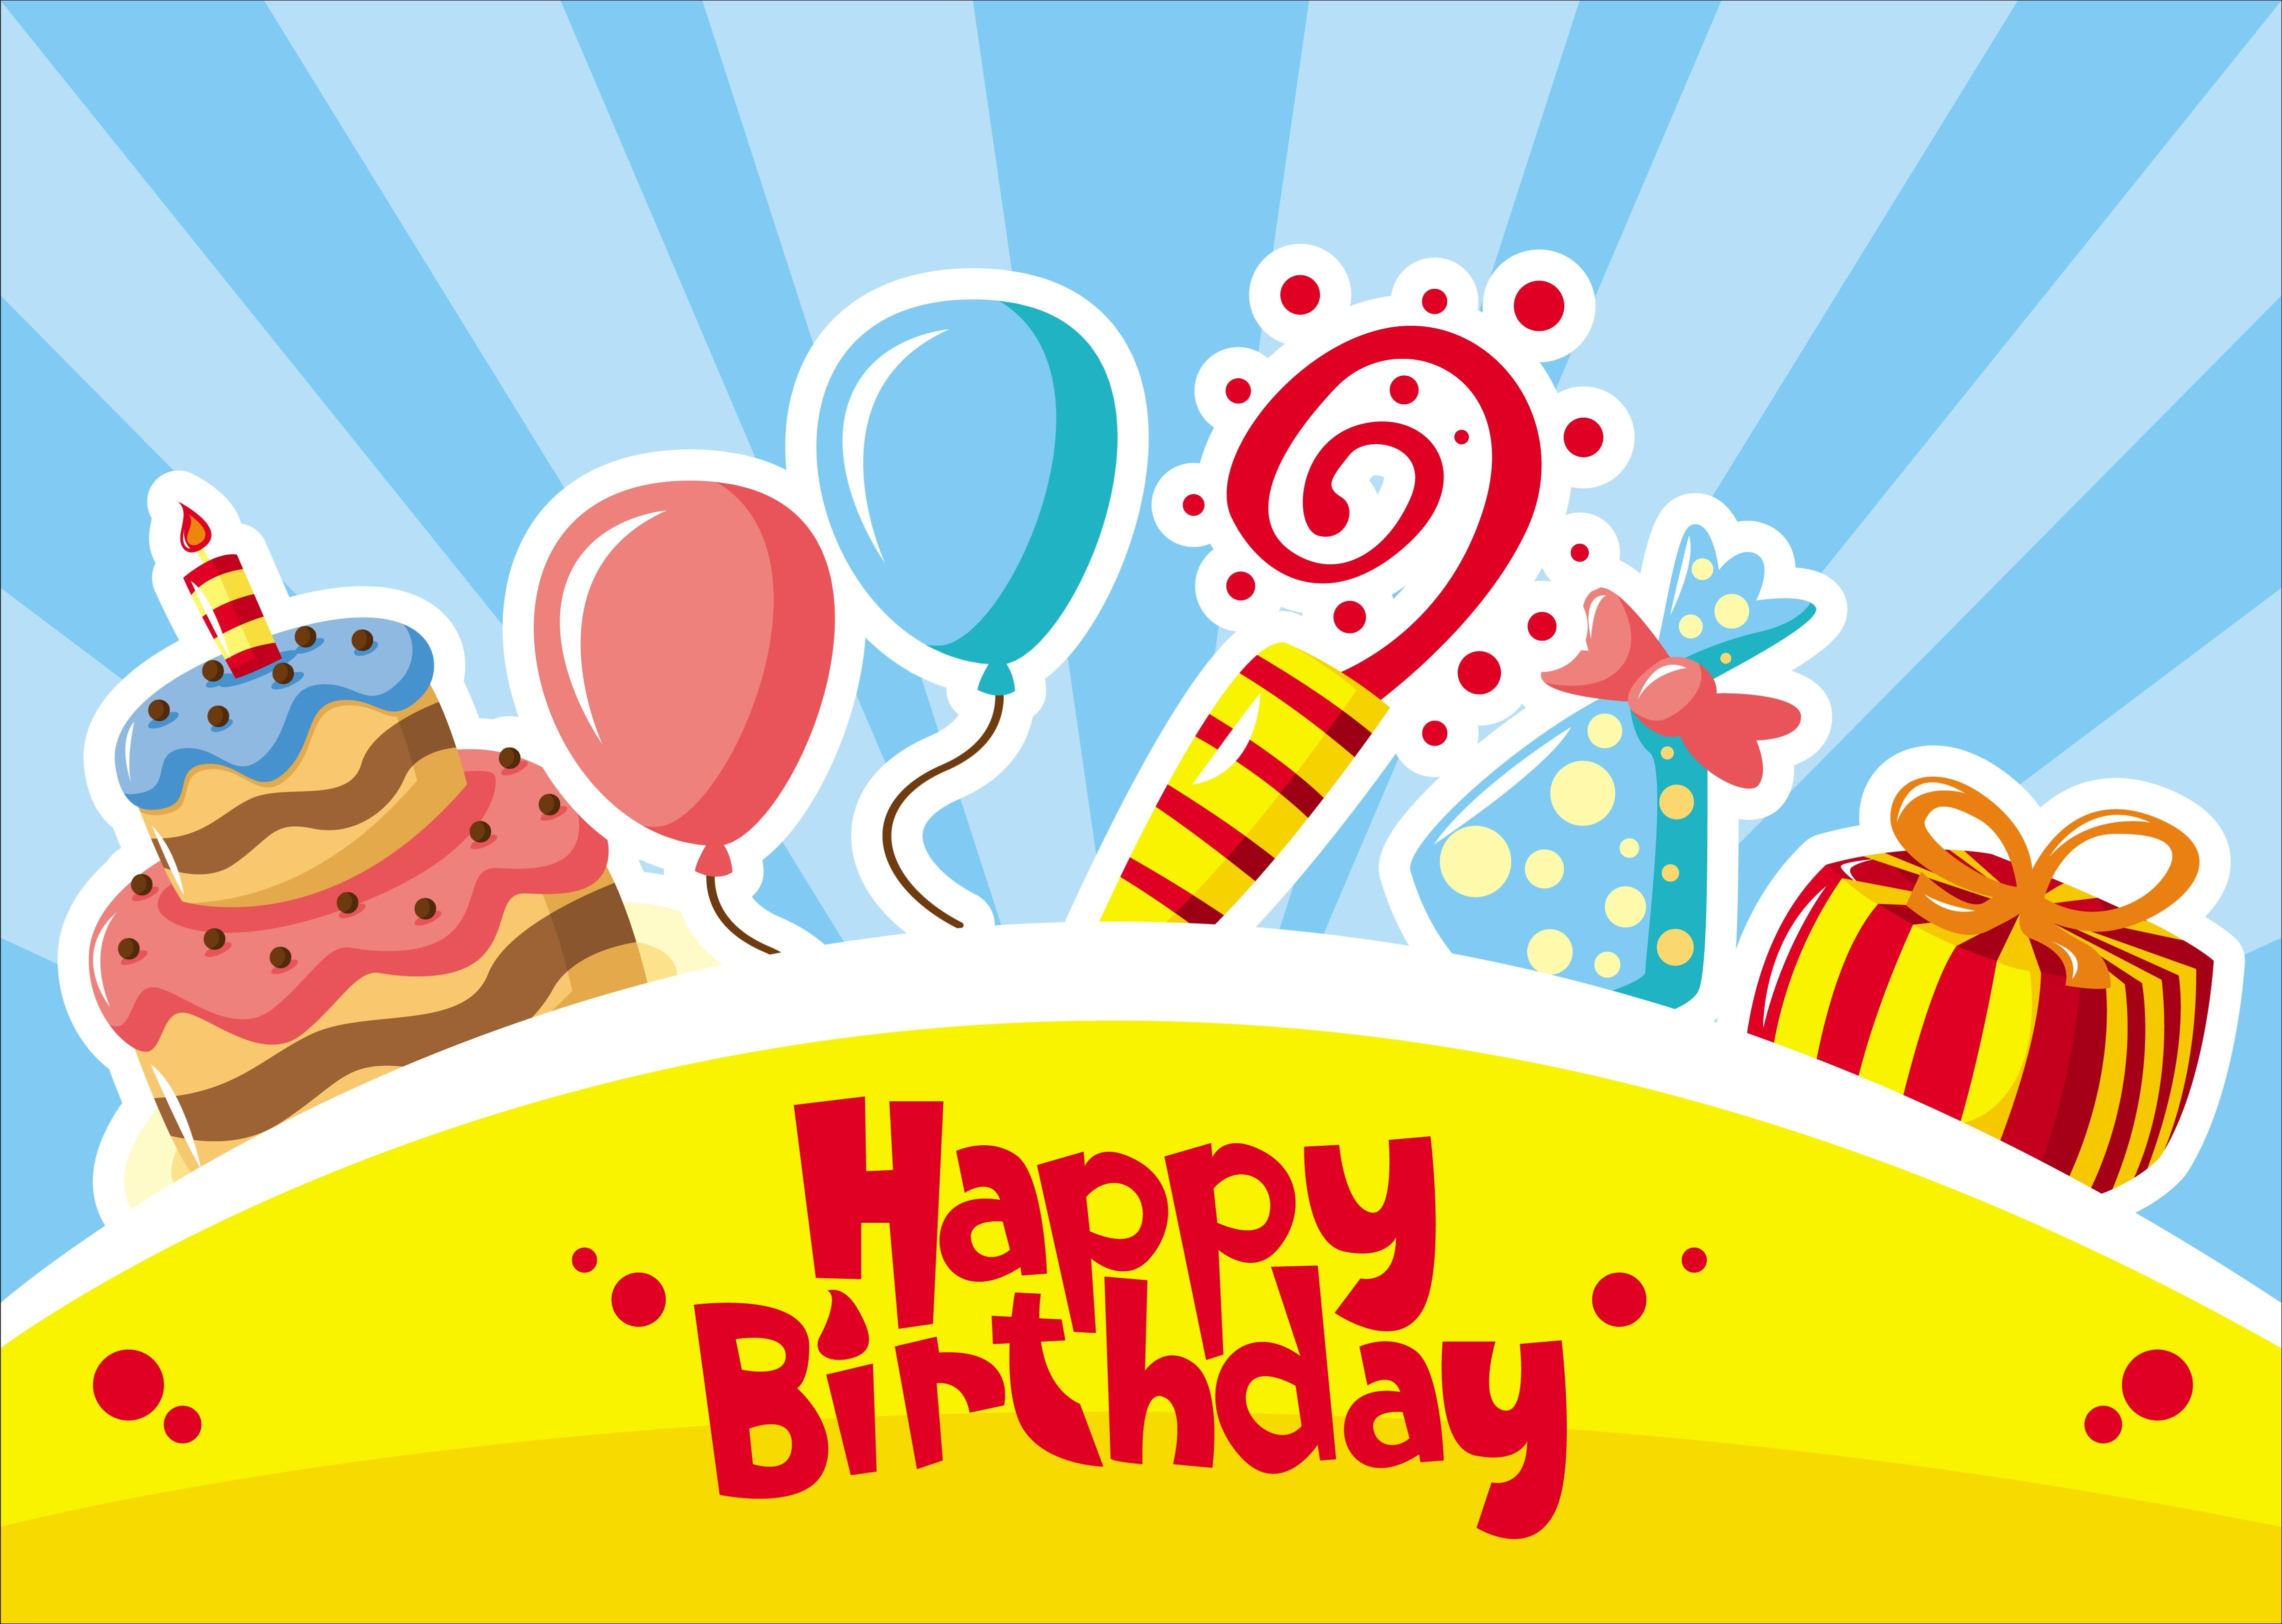 Happy birthday song download Happy Birthday logeswary